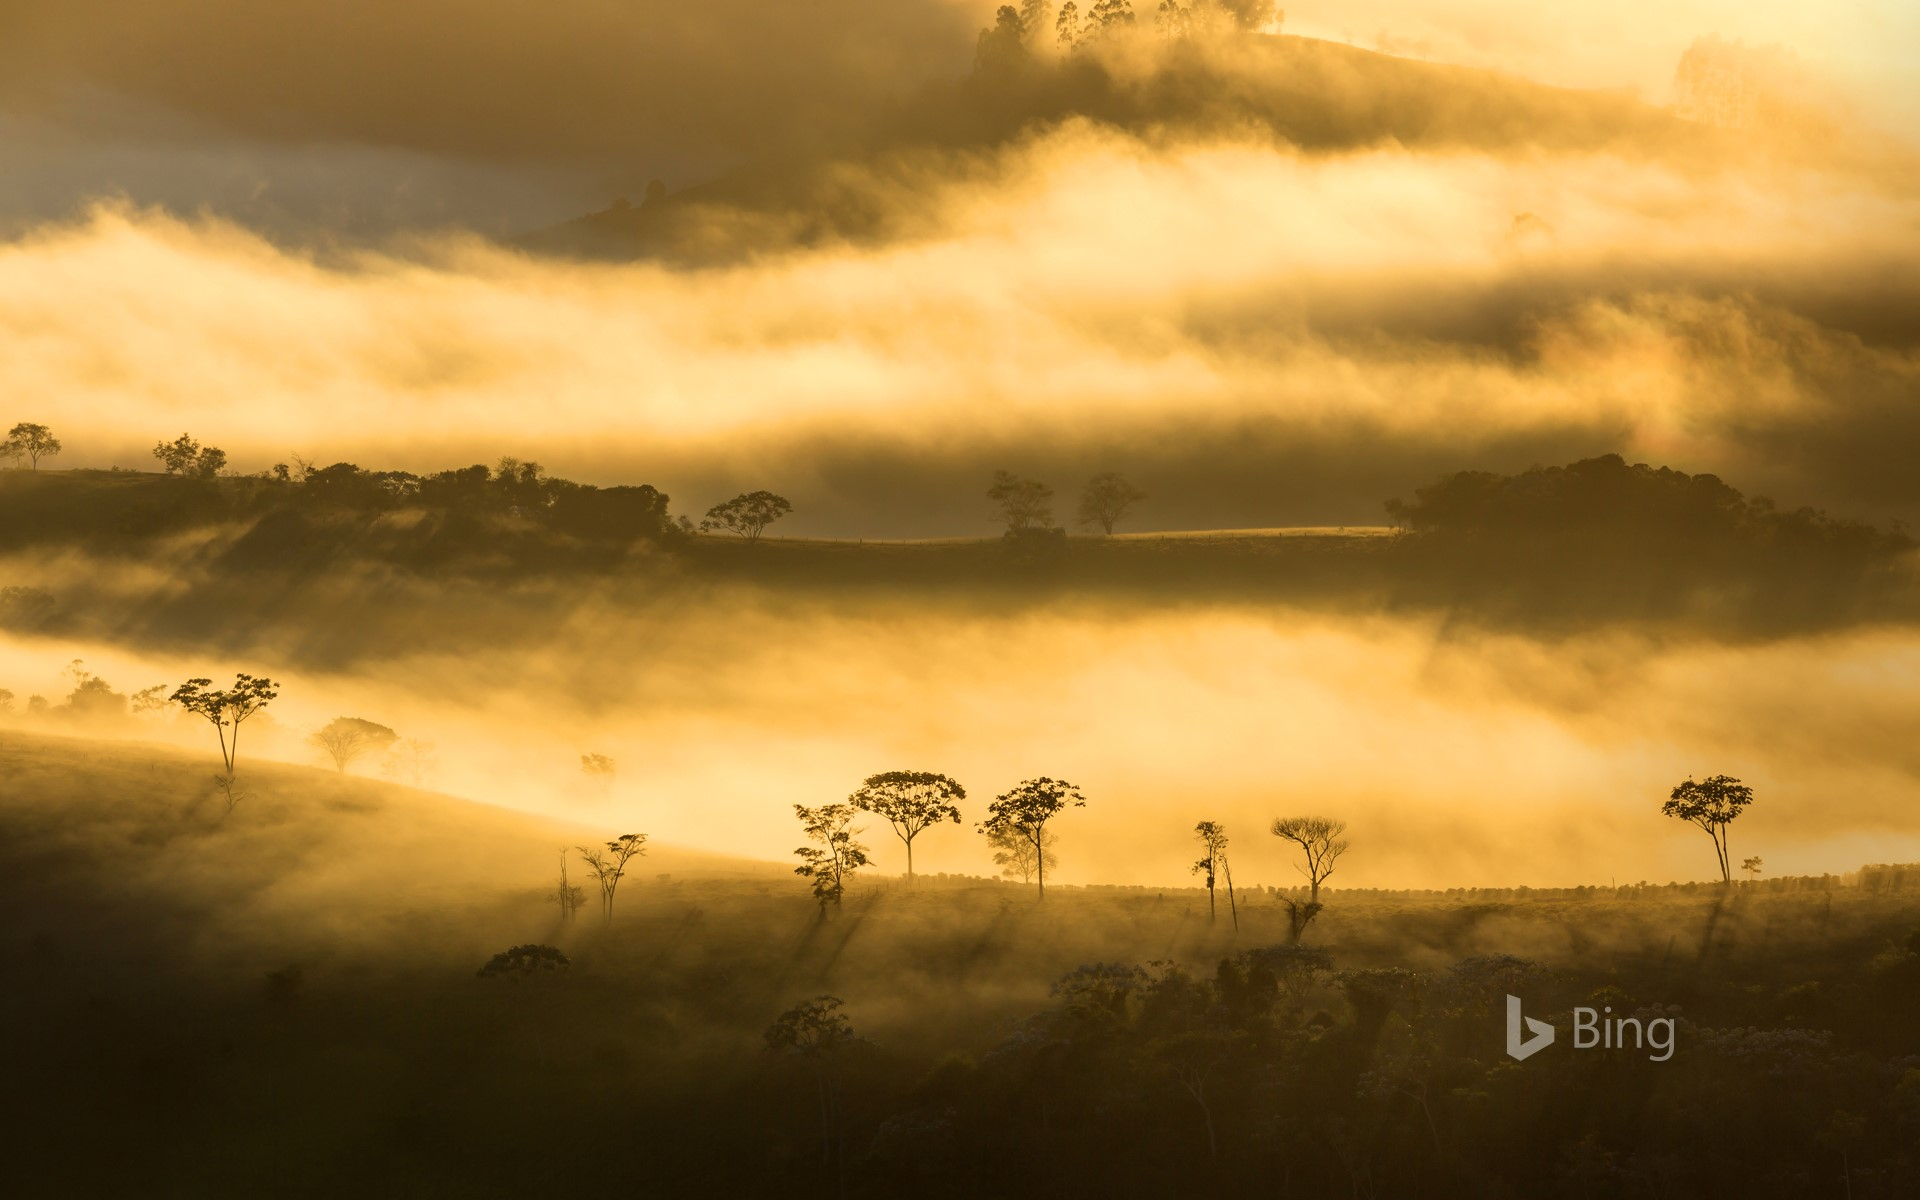 Fog over the mountains in Minas Gerais state, Brazil